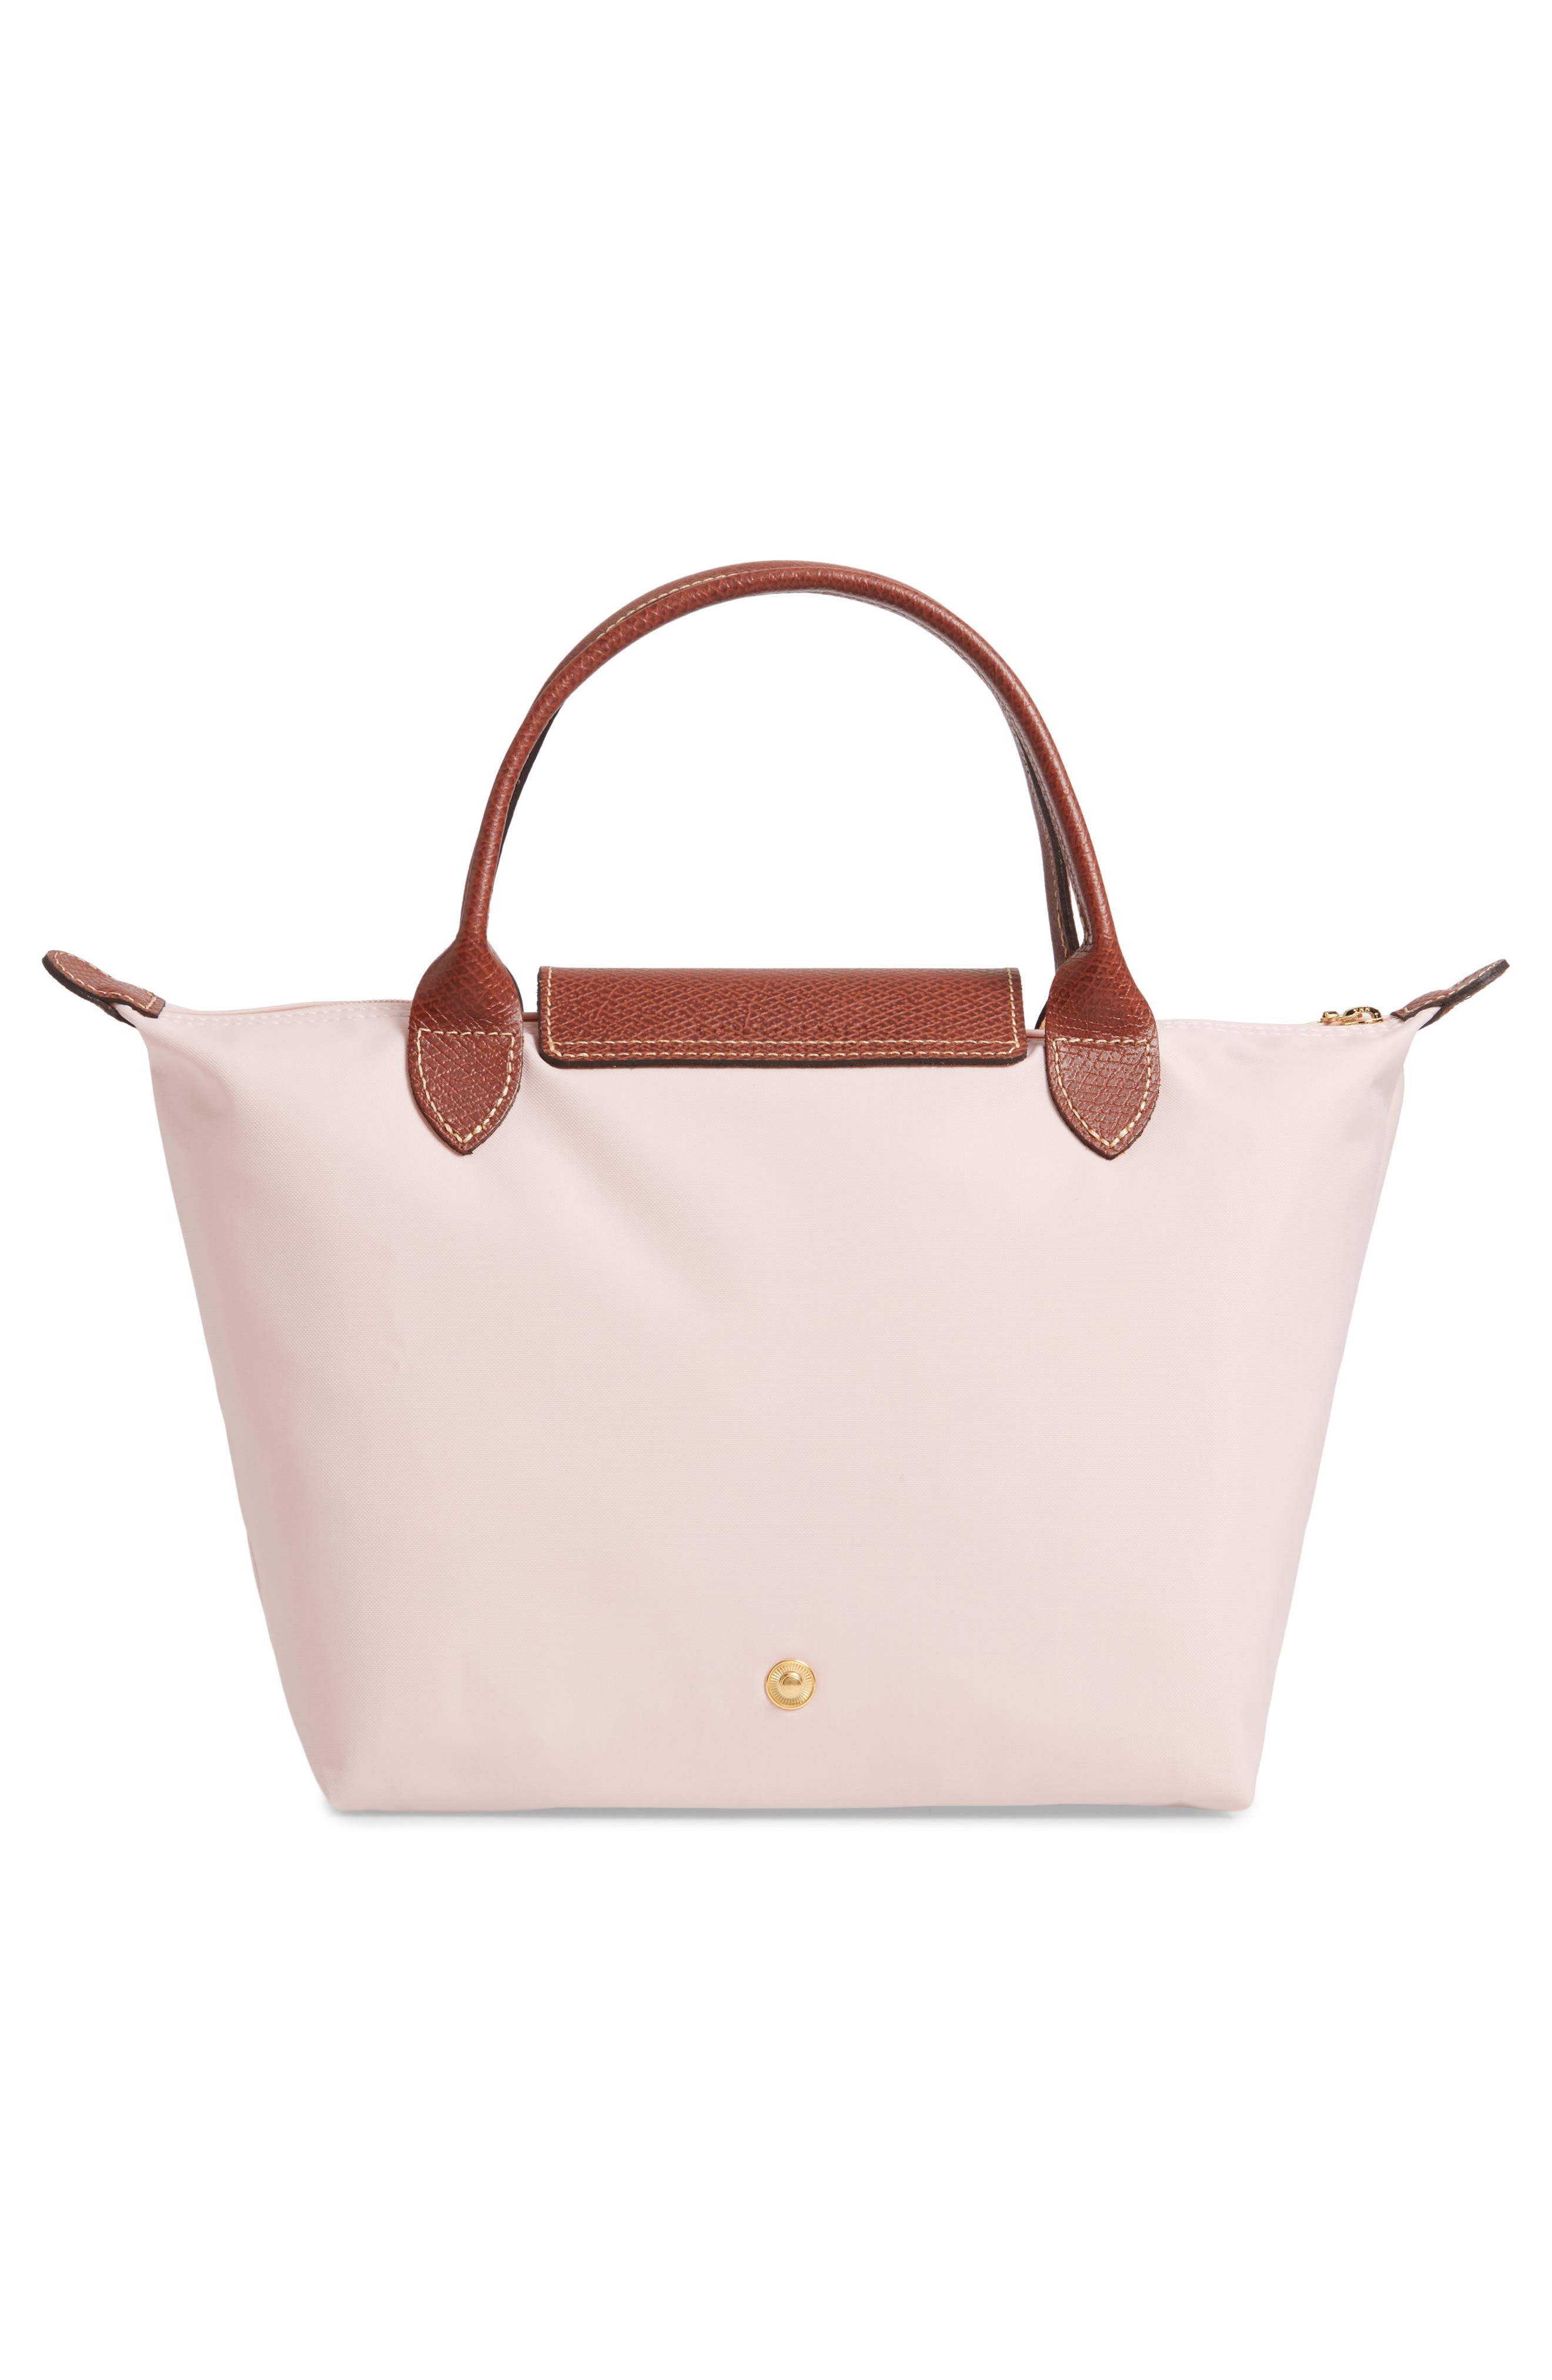 LONGCHAMP,                             'Small Le Pliage' Top Handle Tote,                             Alternate thumbnail 3, color,                             PINK ICE